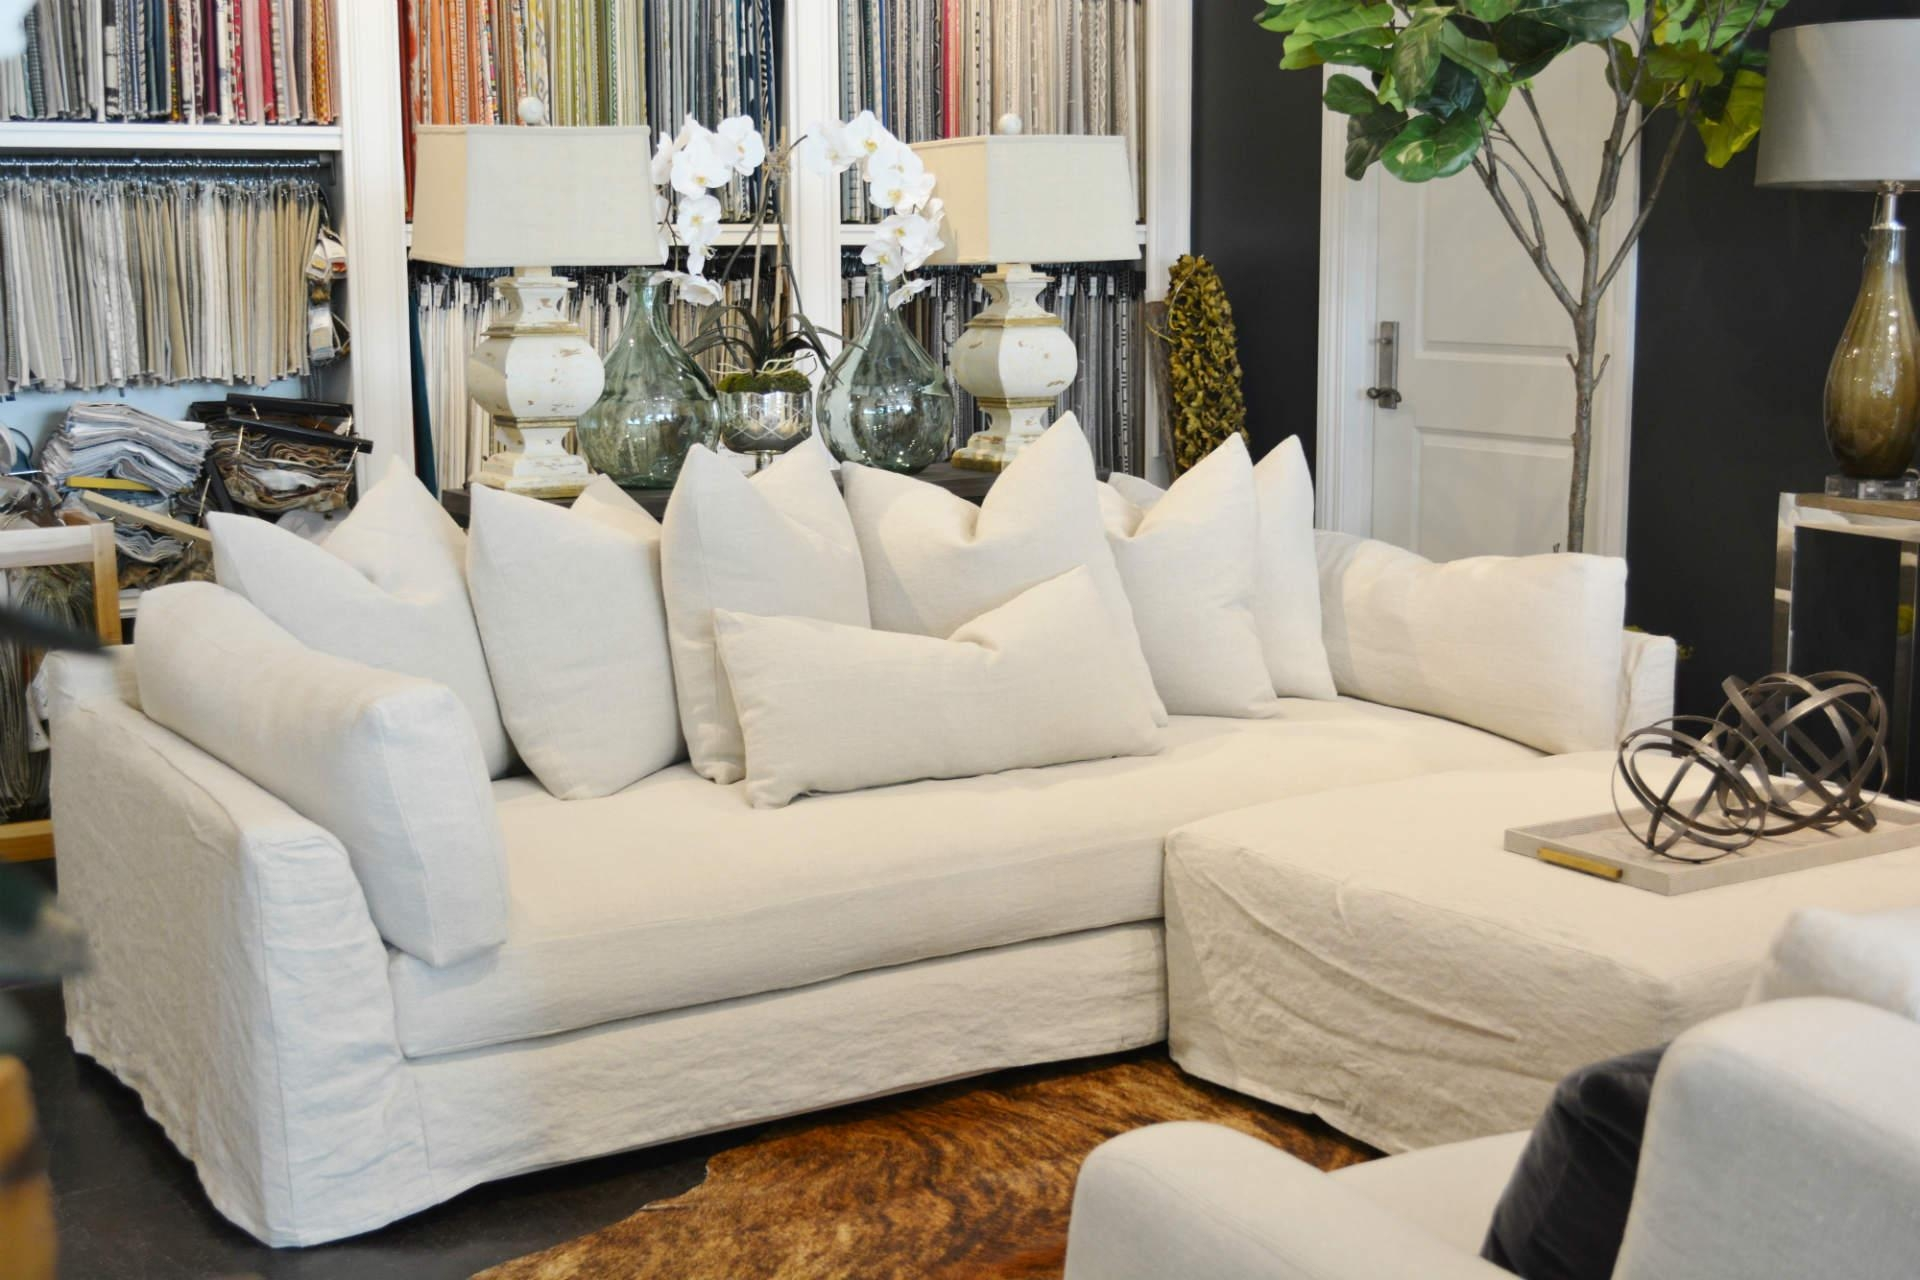 What's New Wednesday: Private Label Newport Collection – Heather Throughout Newport Sofas (Image 20 of 20)